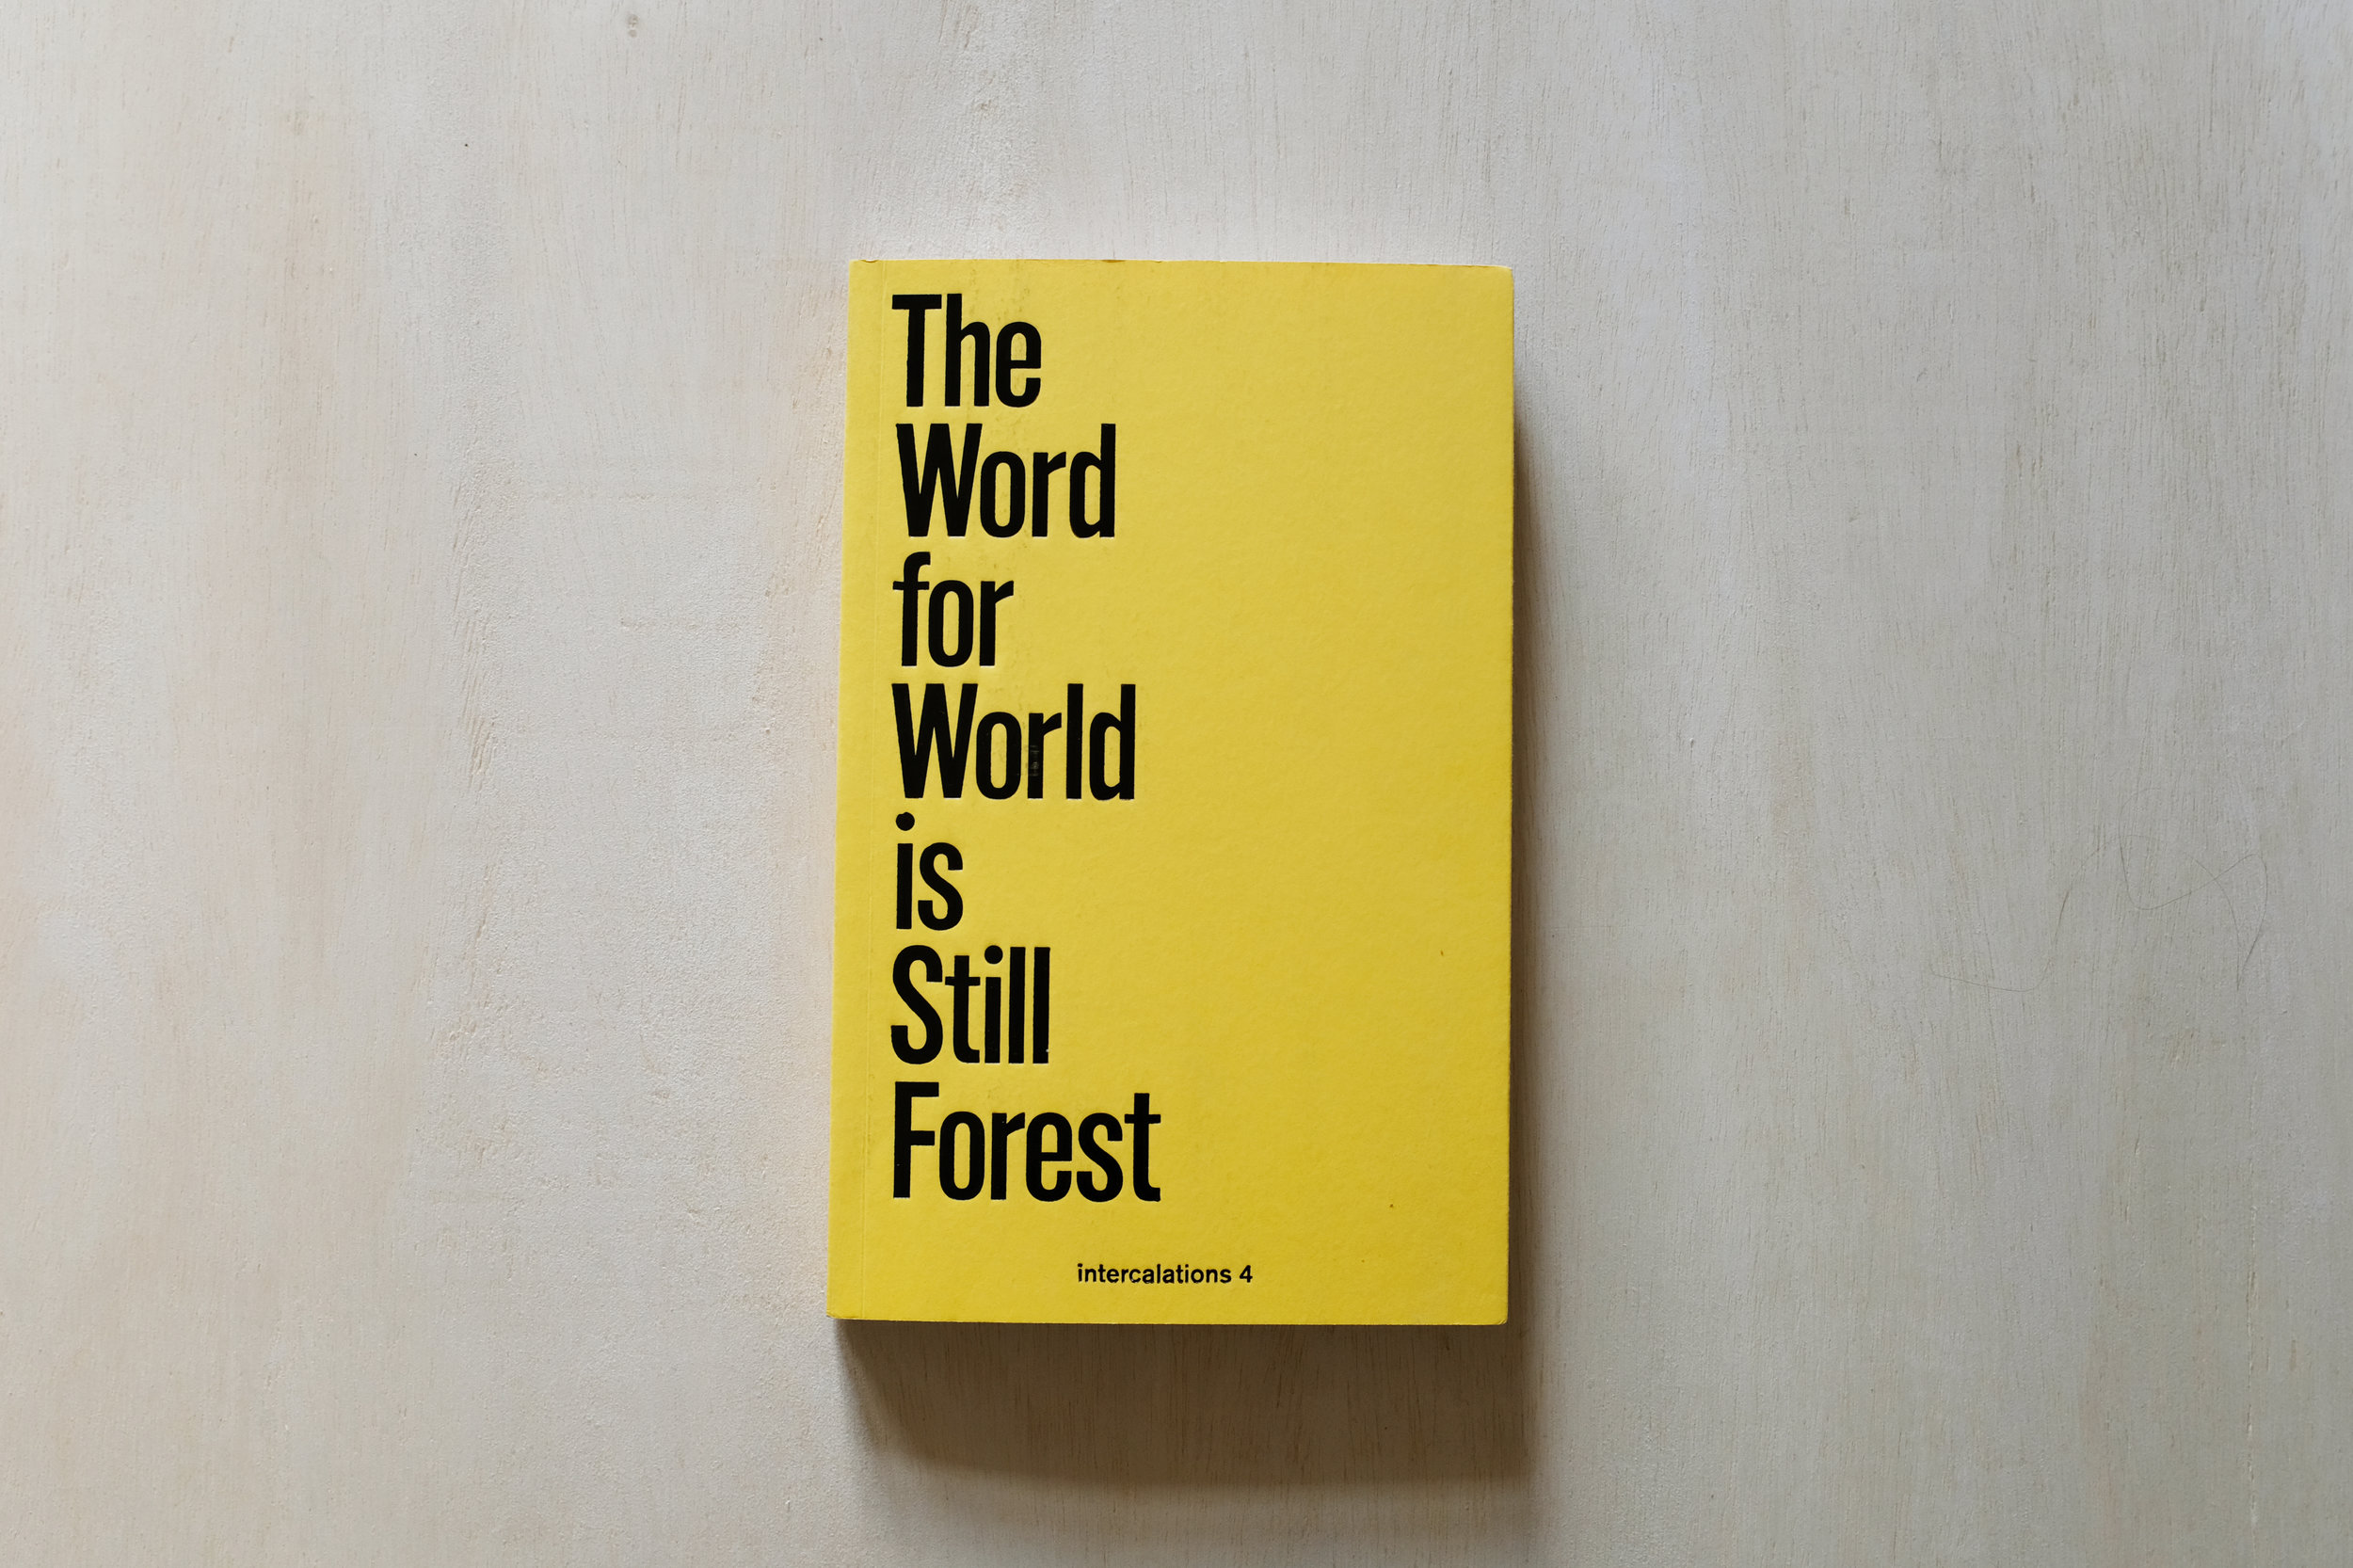 "The chapter "" It Goes on like a Forest "" from the book  The Word for World is Still Forest  addresses the consequences of the modernist perspectives on forests. Reading it led me to ask the question: How is our relationship to the forest changing?"